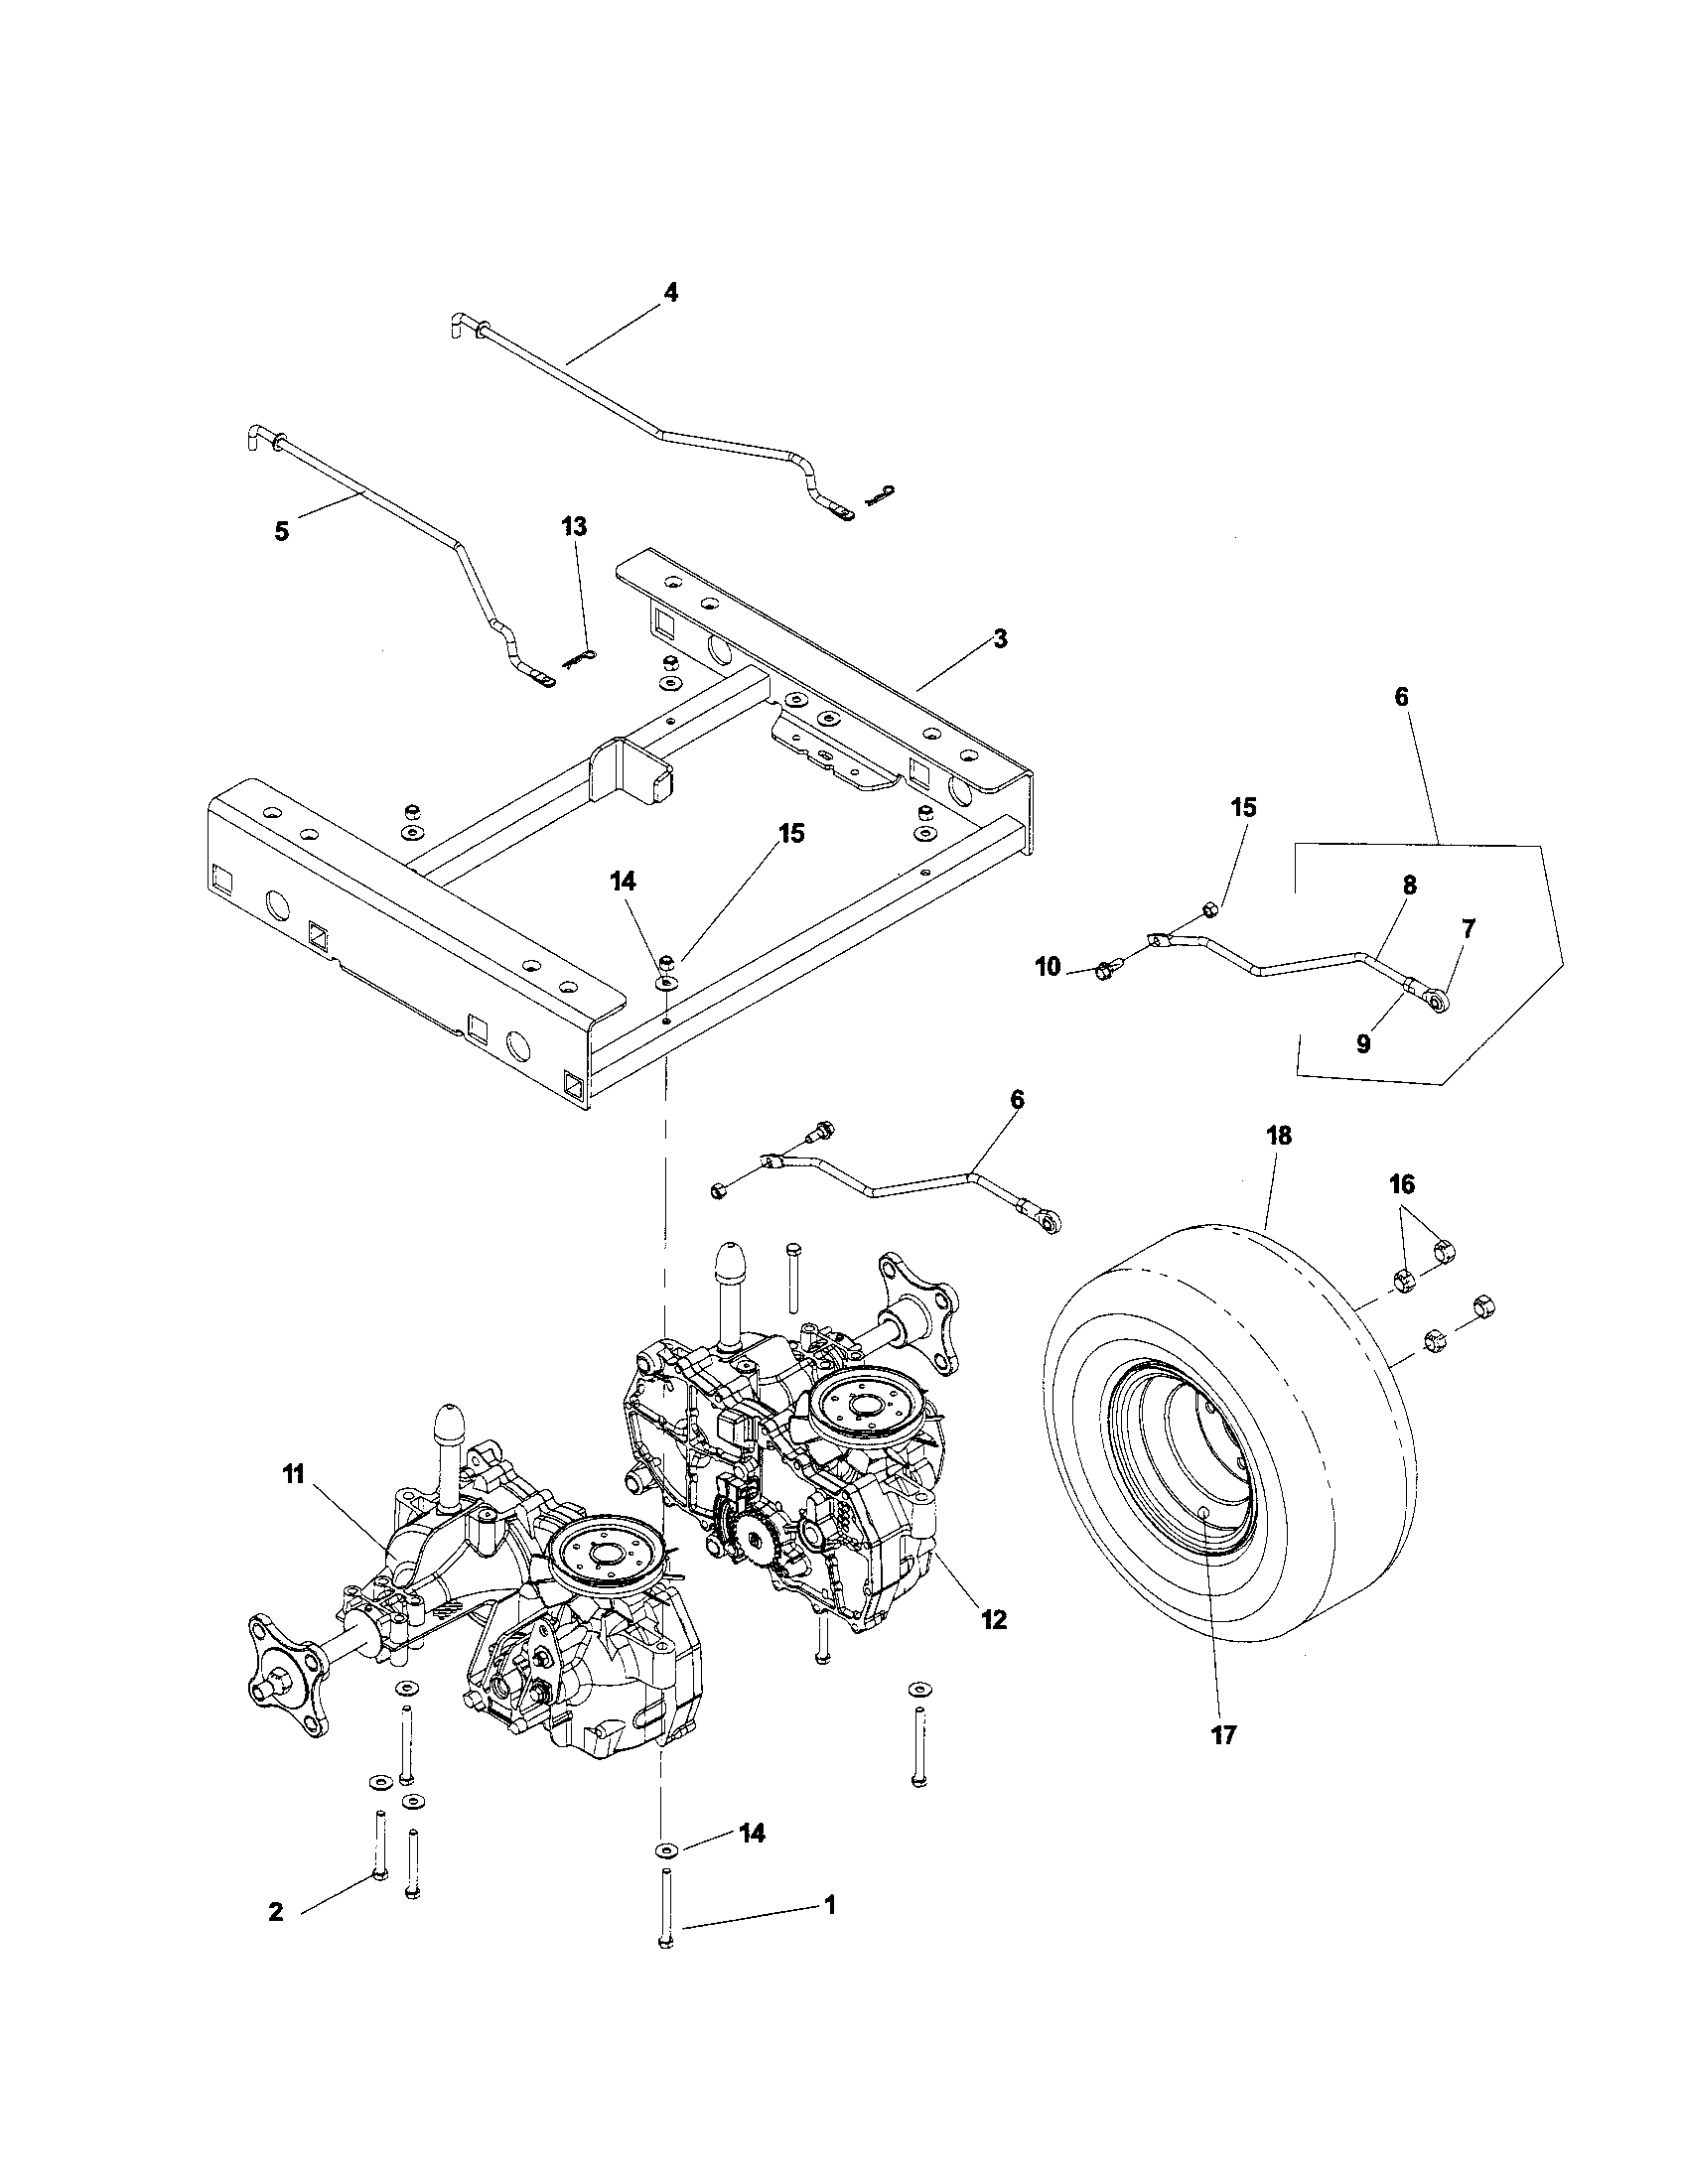 Wiring Diagram For Husqvarna Rz5426 Husqvarna Lawn Mowers